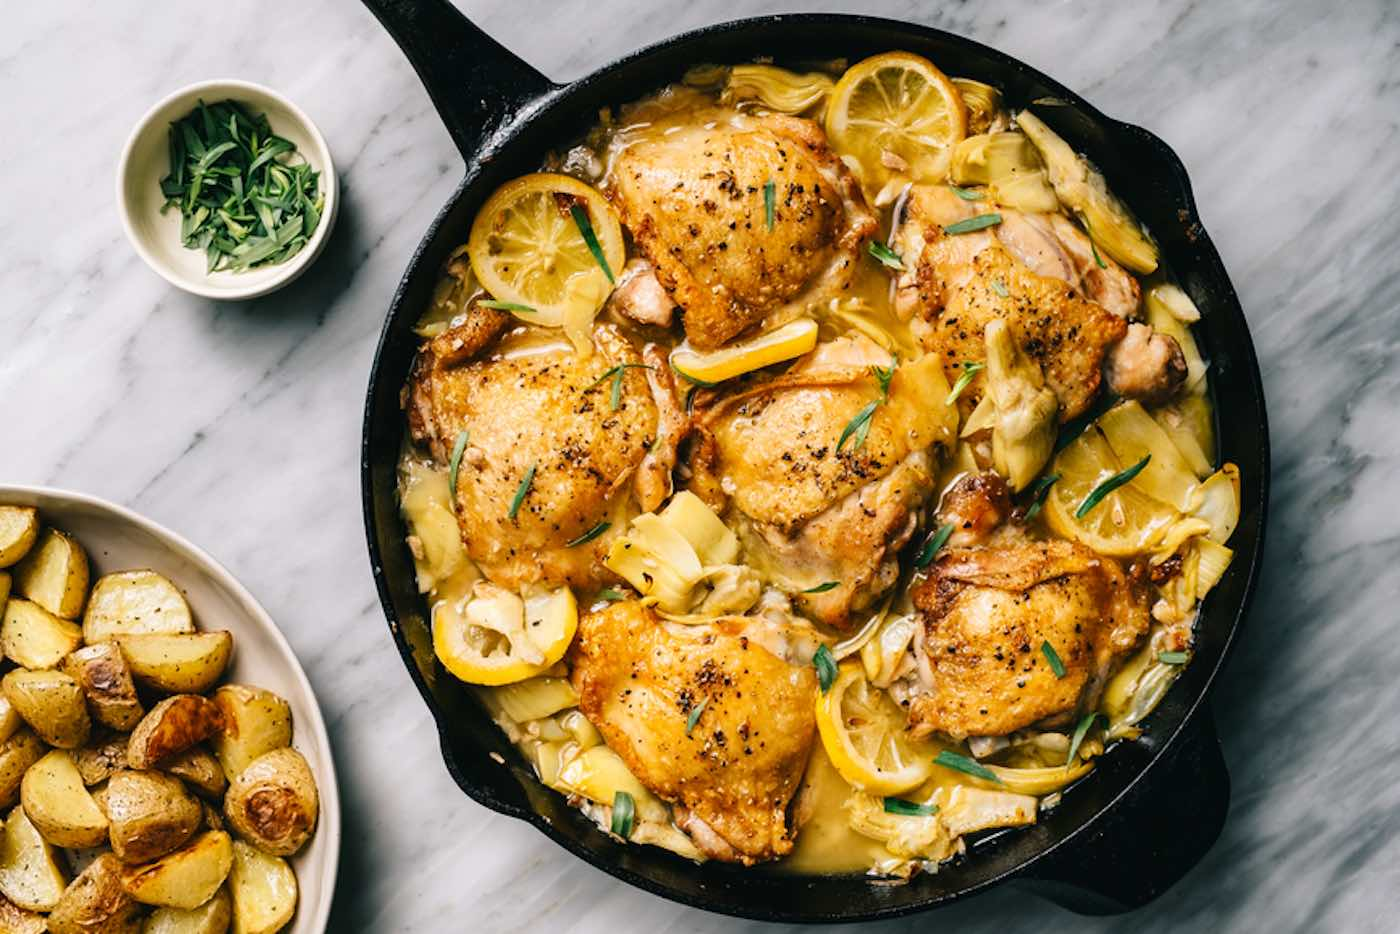 How to use a $20 cast iron skillet to prepare every meal